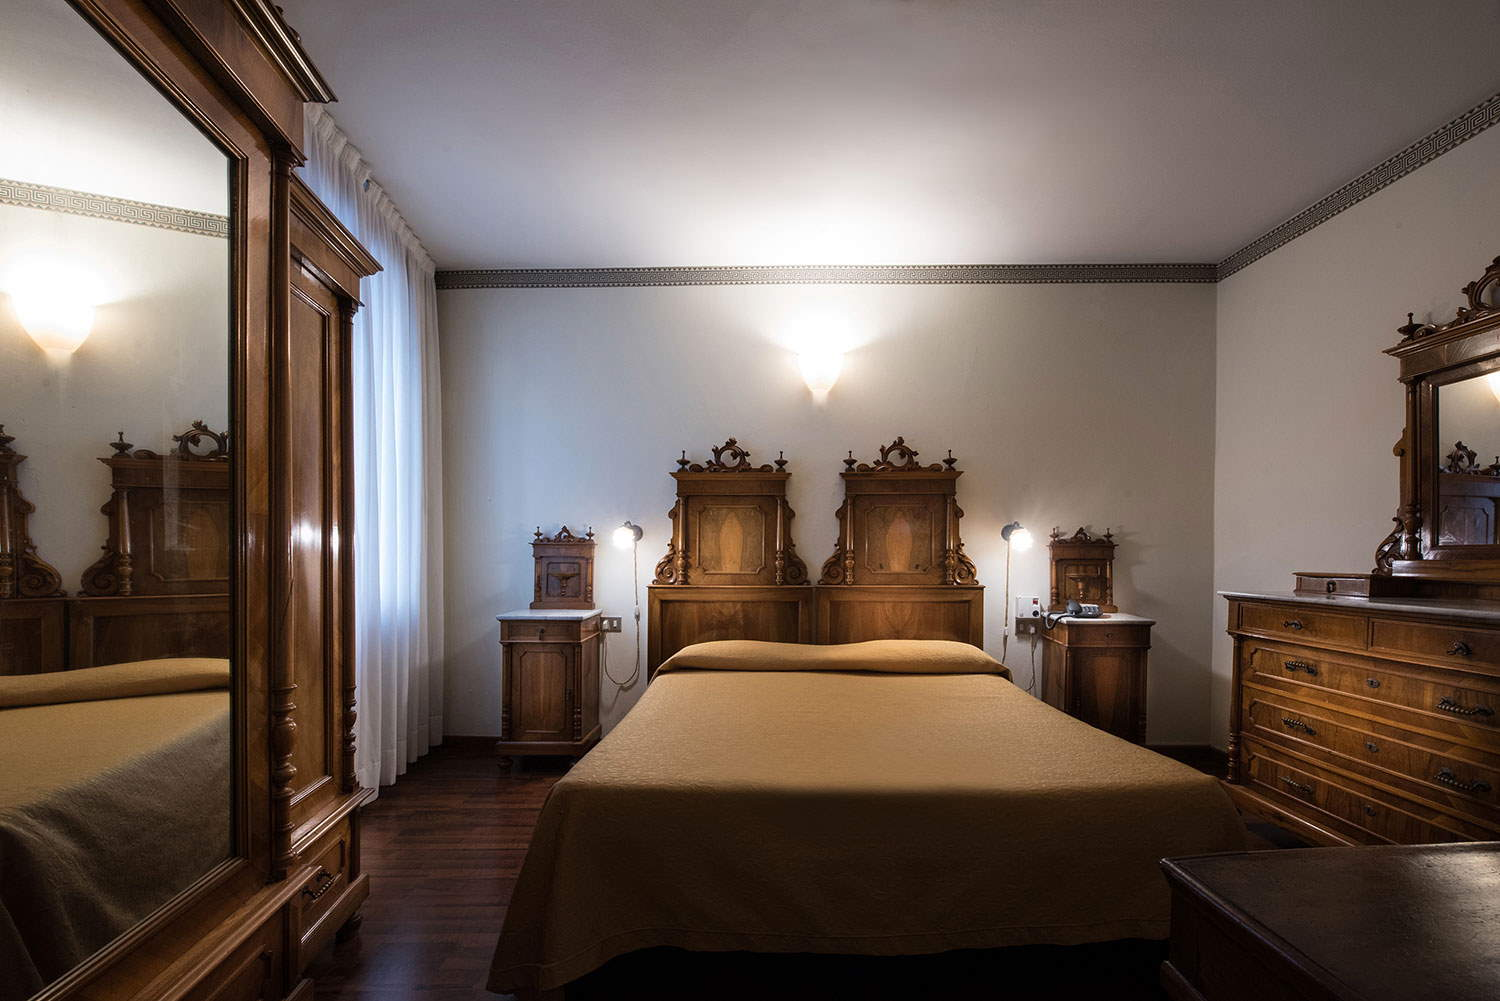 Where to sleep in Vicenza